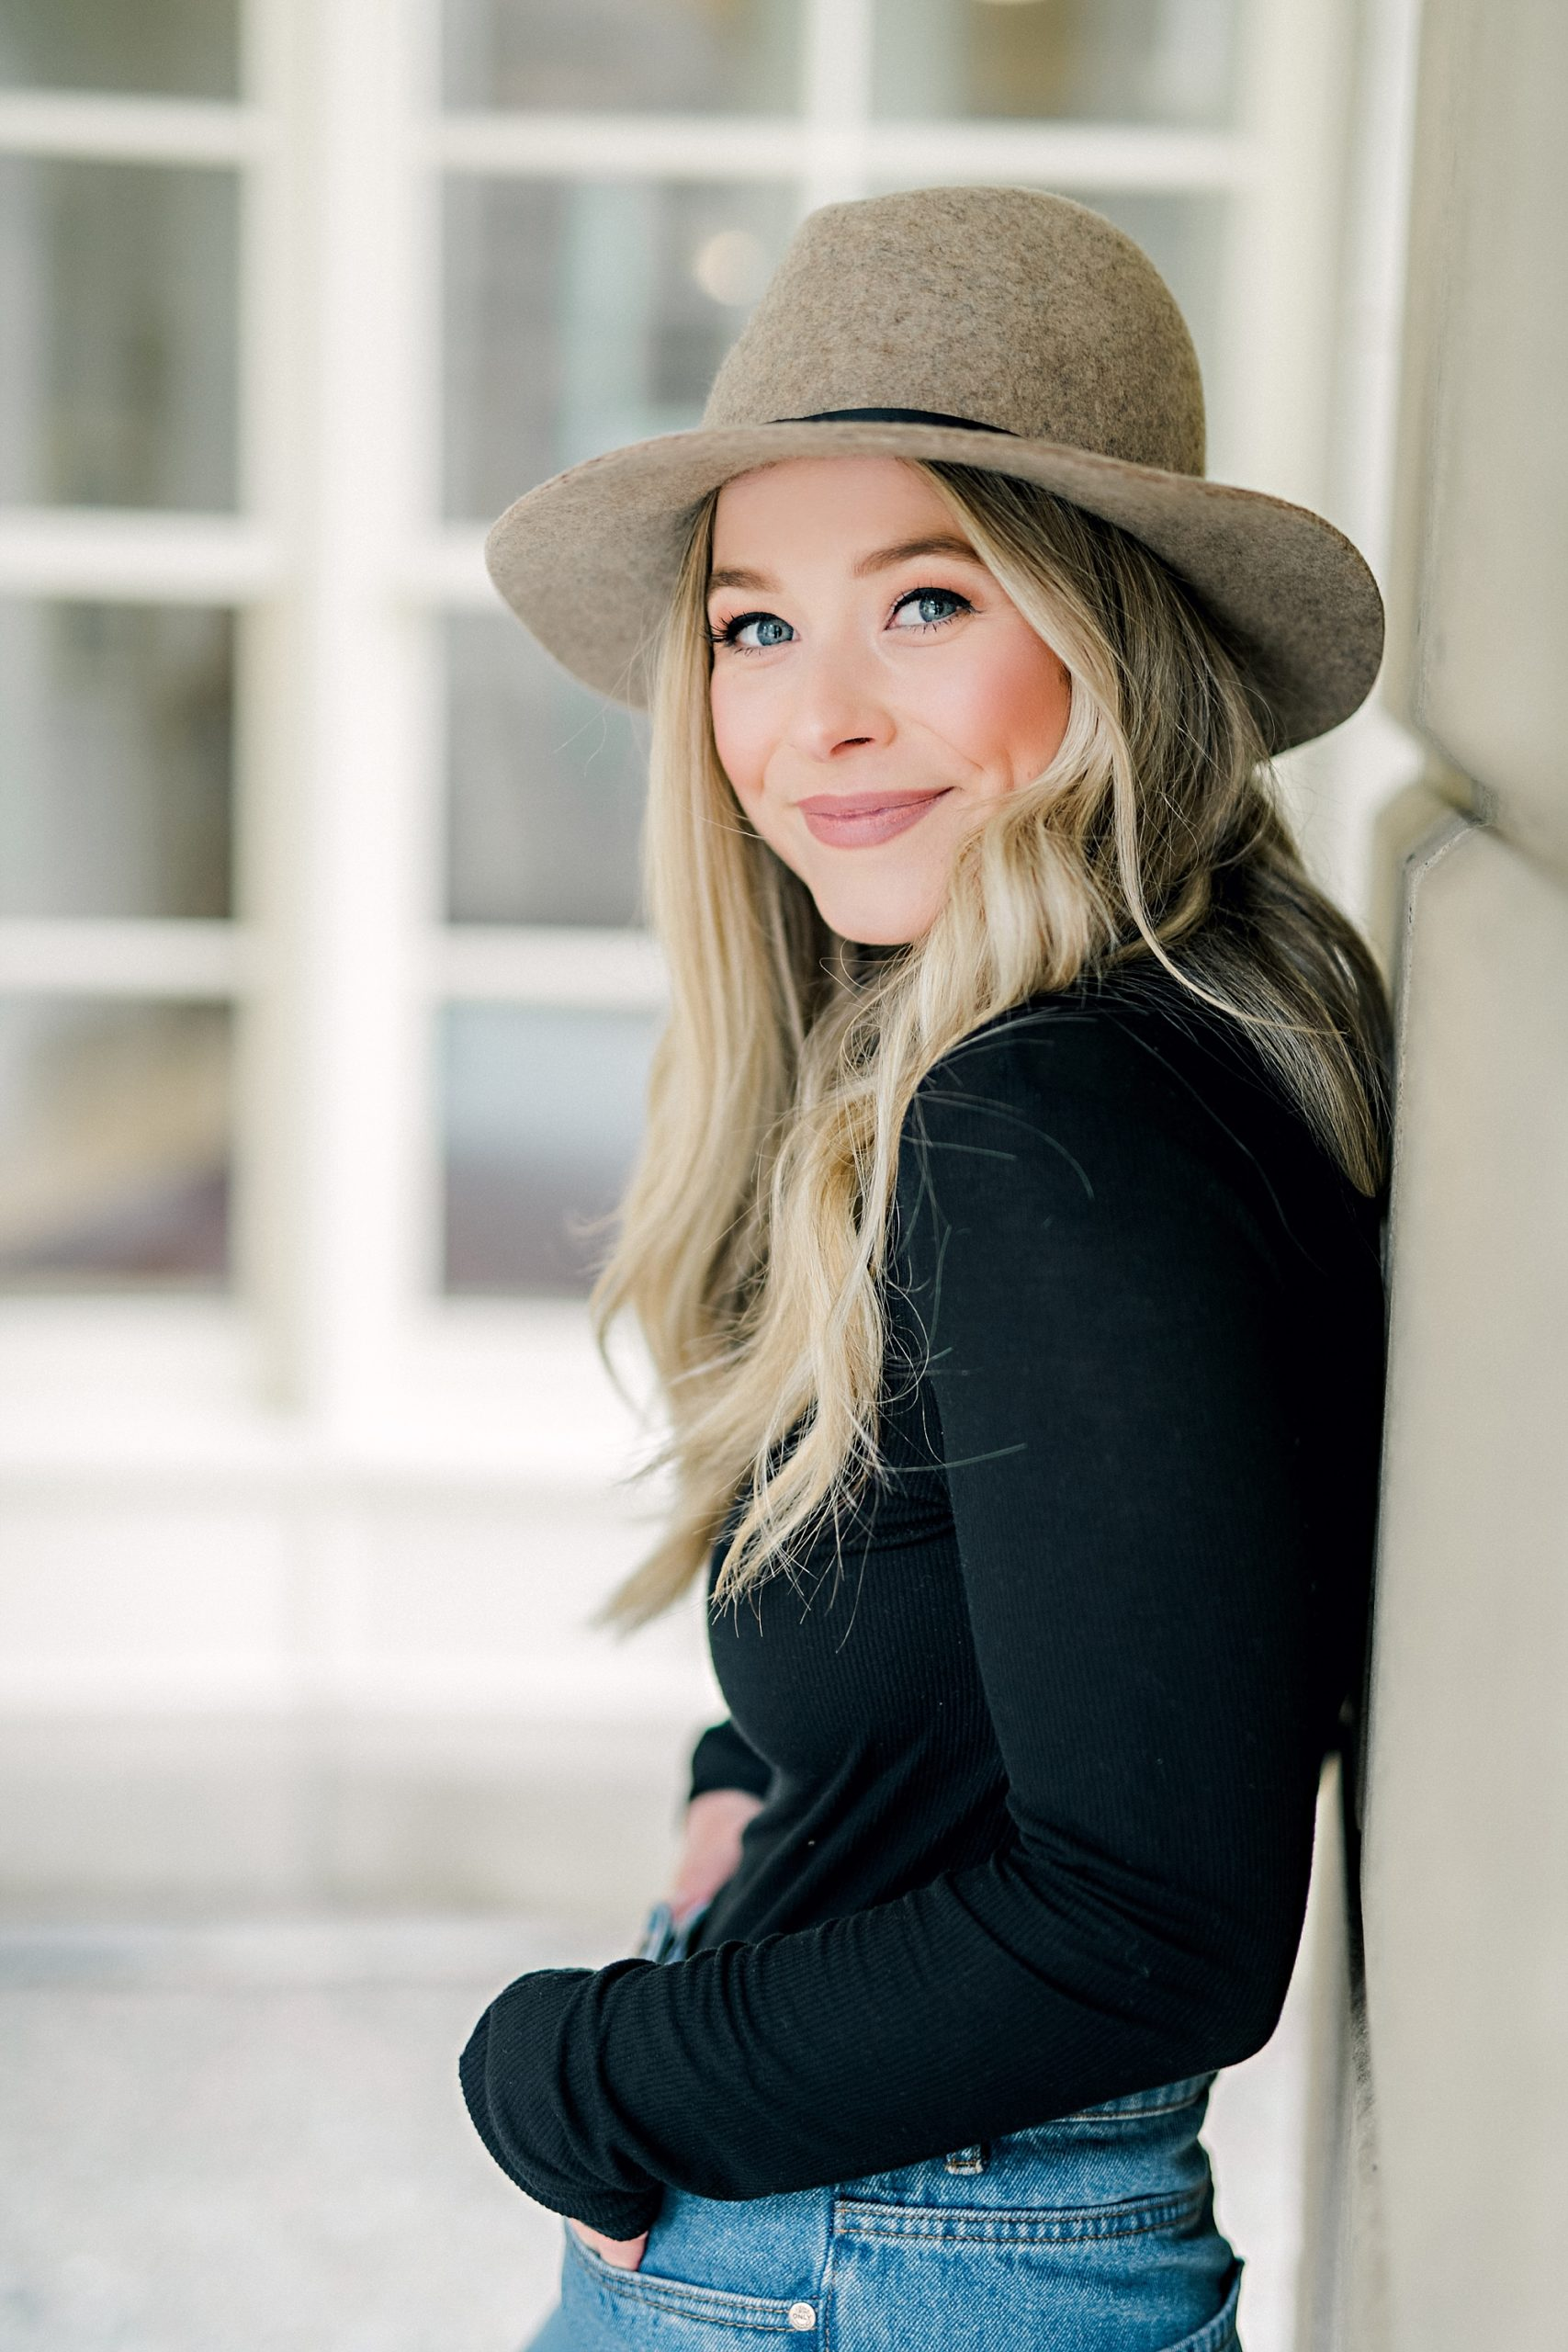 blonde girl in panama hat and black shirt smiling